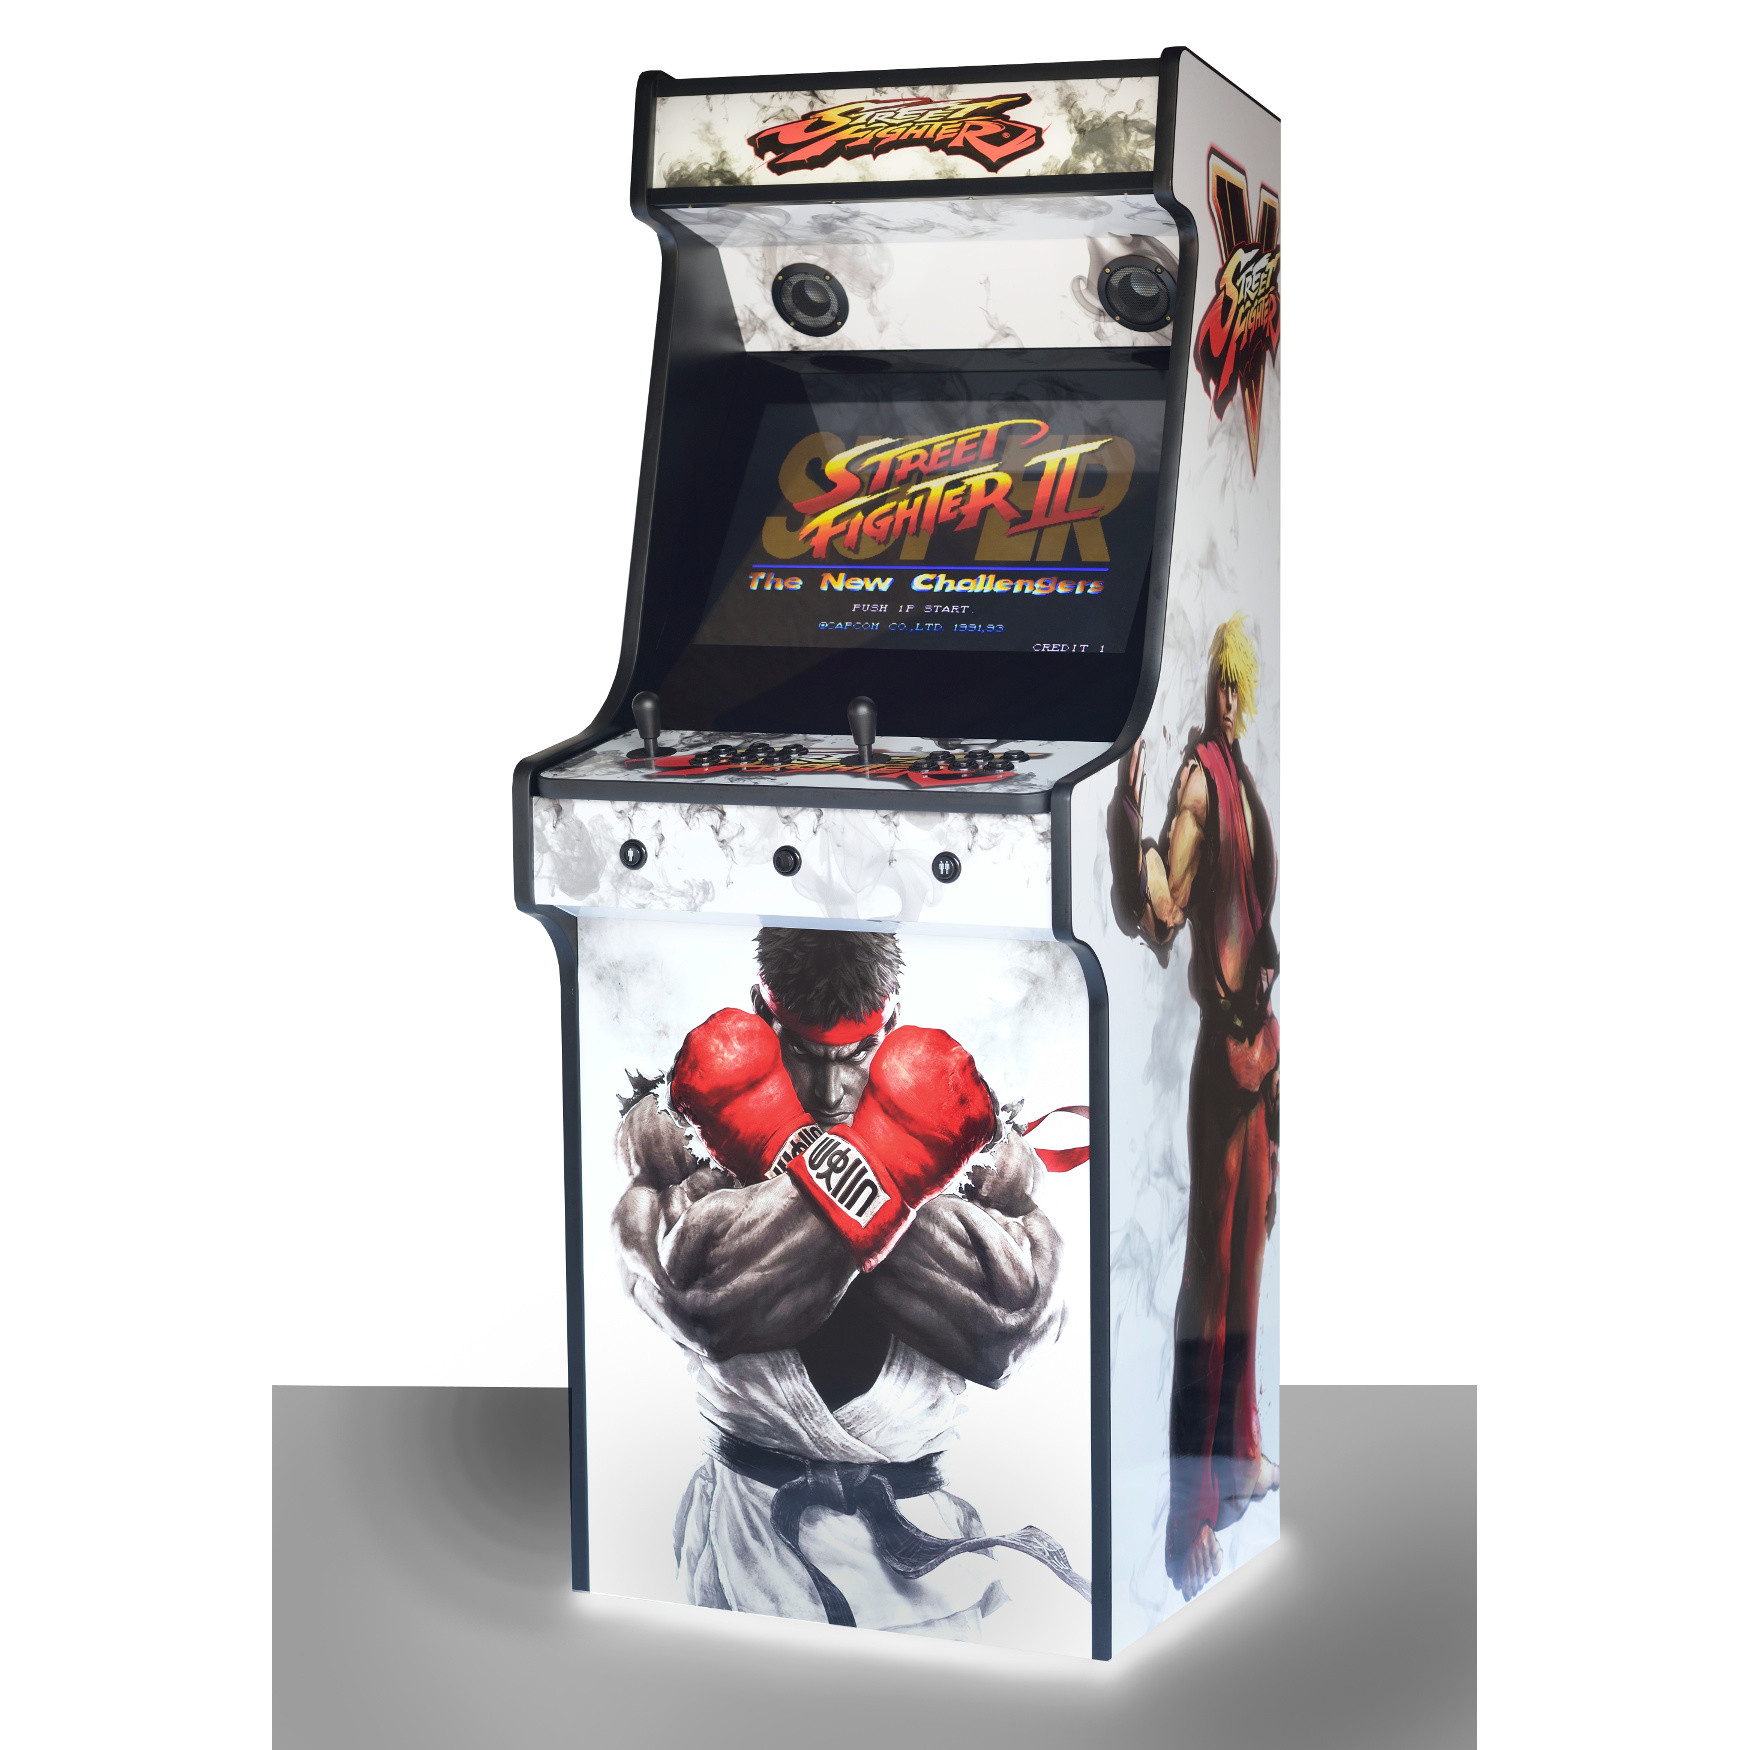 Retro Upright Arcade Machine 520 Games Street Fighter 5